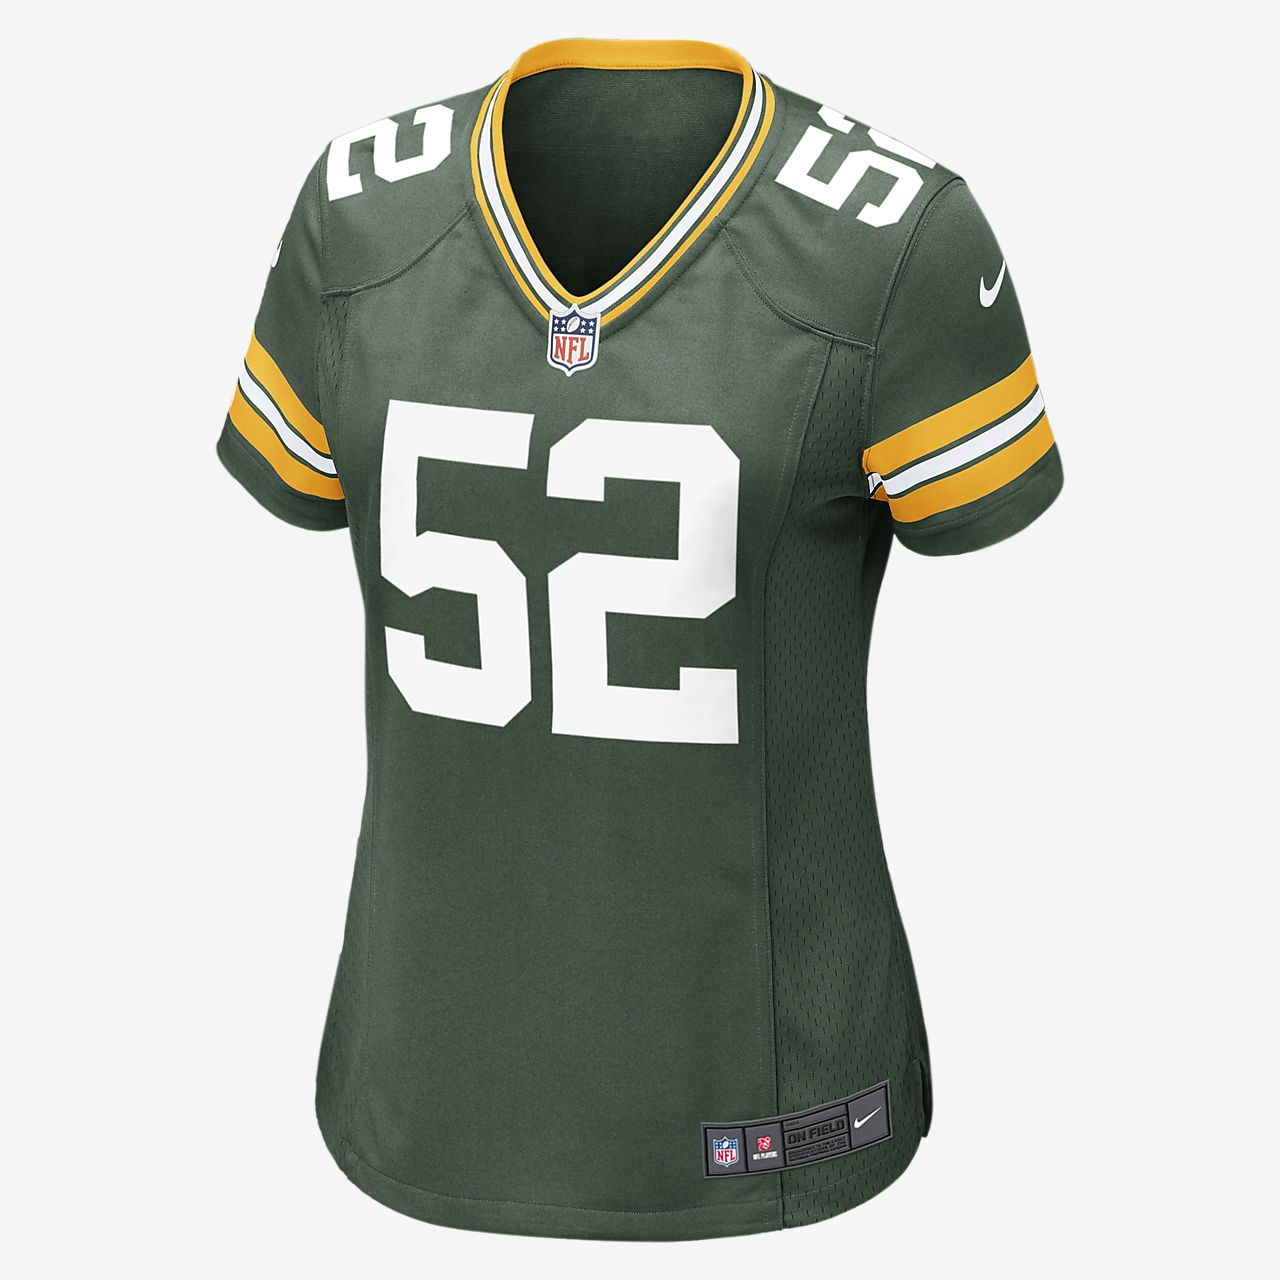 Women s Football Jersey. NFL Green Bay Packers Game Jersey (Clay Matthews) bacc31c83